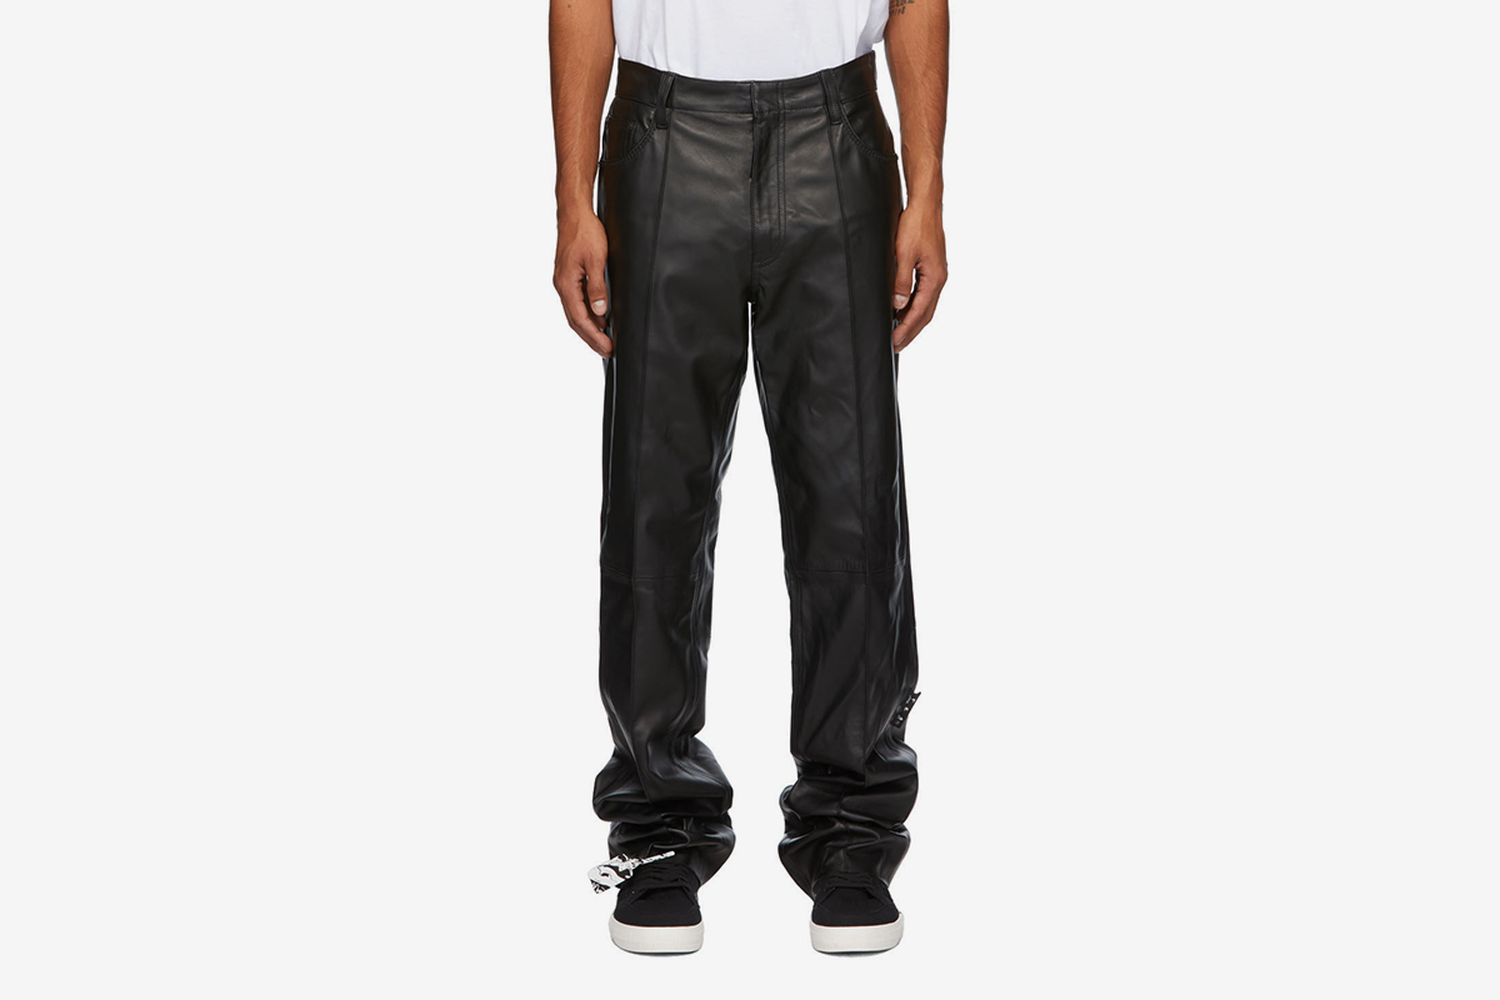 Leather Formal Pants